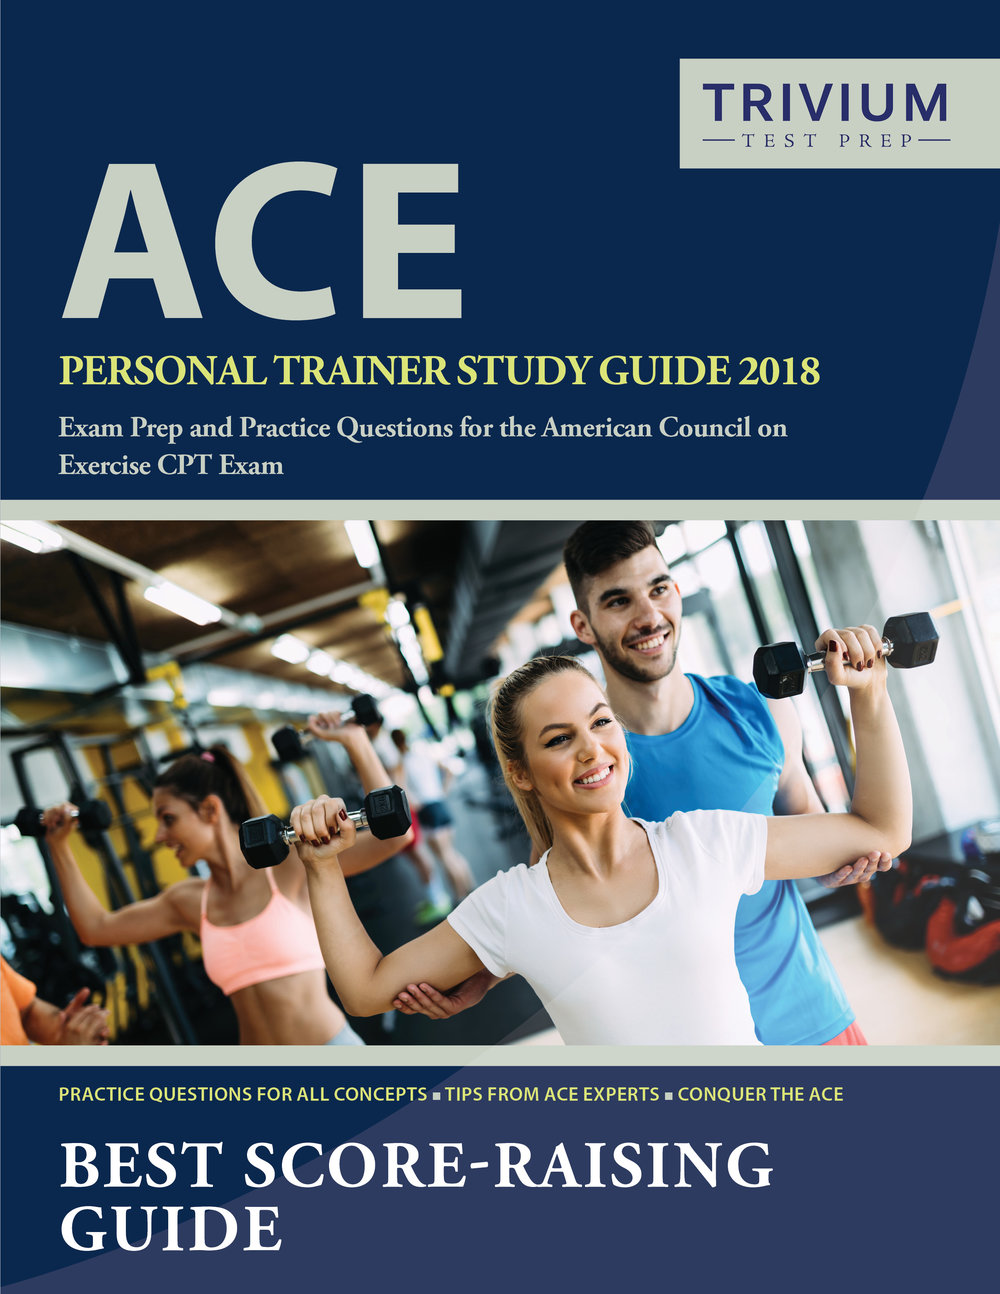 ACSM Personal Trainer